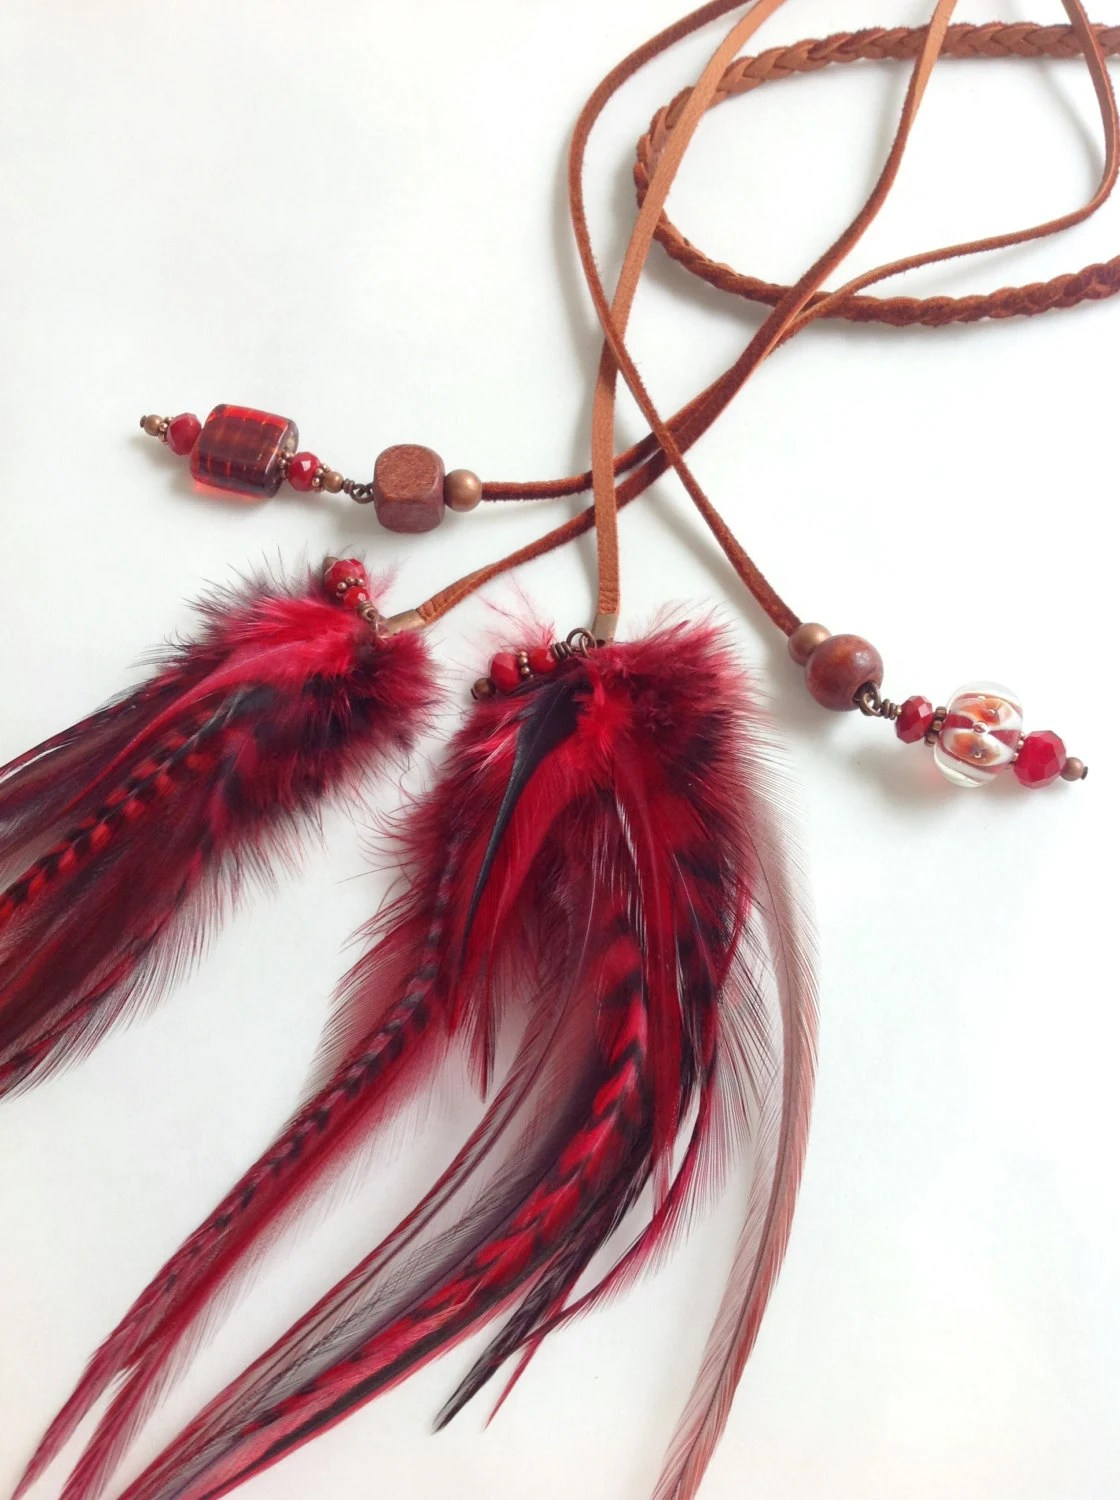 Red Hot braided leather feather headband with deep crimson feathers and red beads - bdii